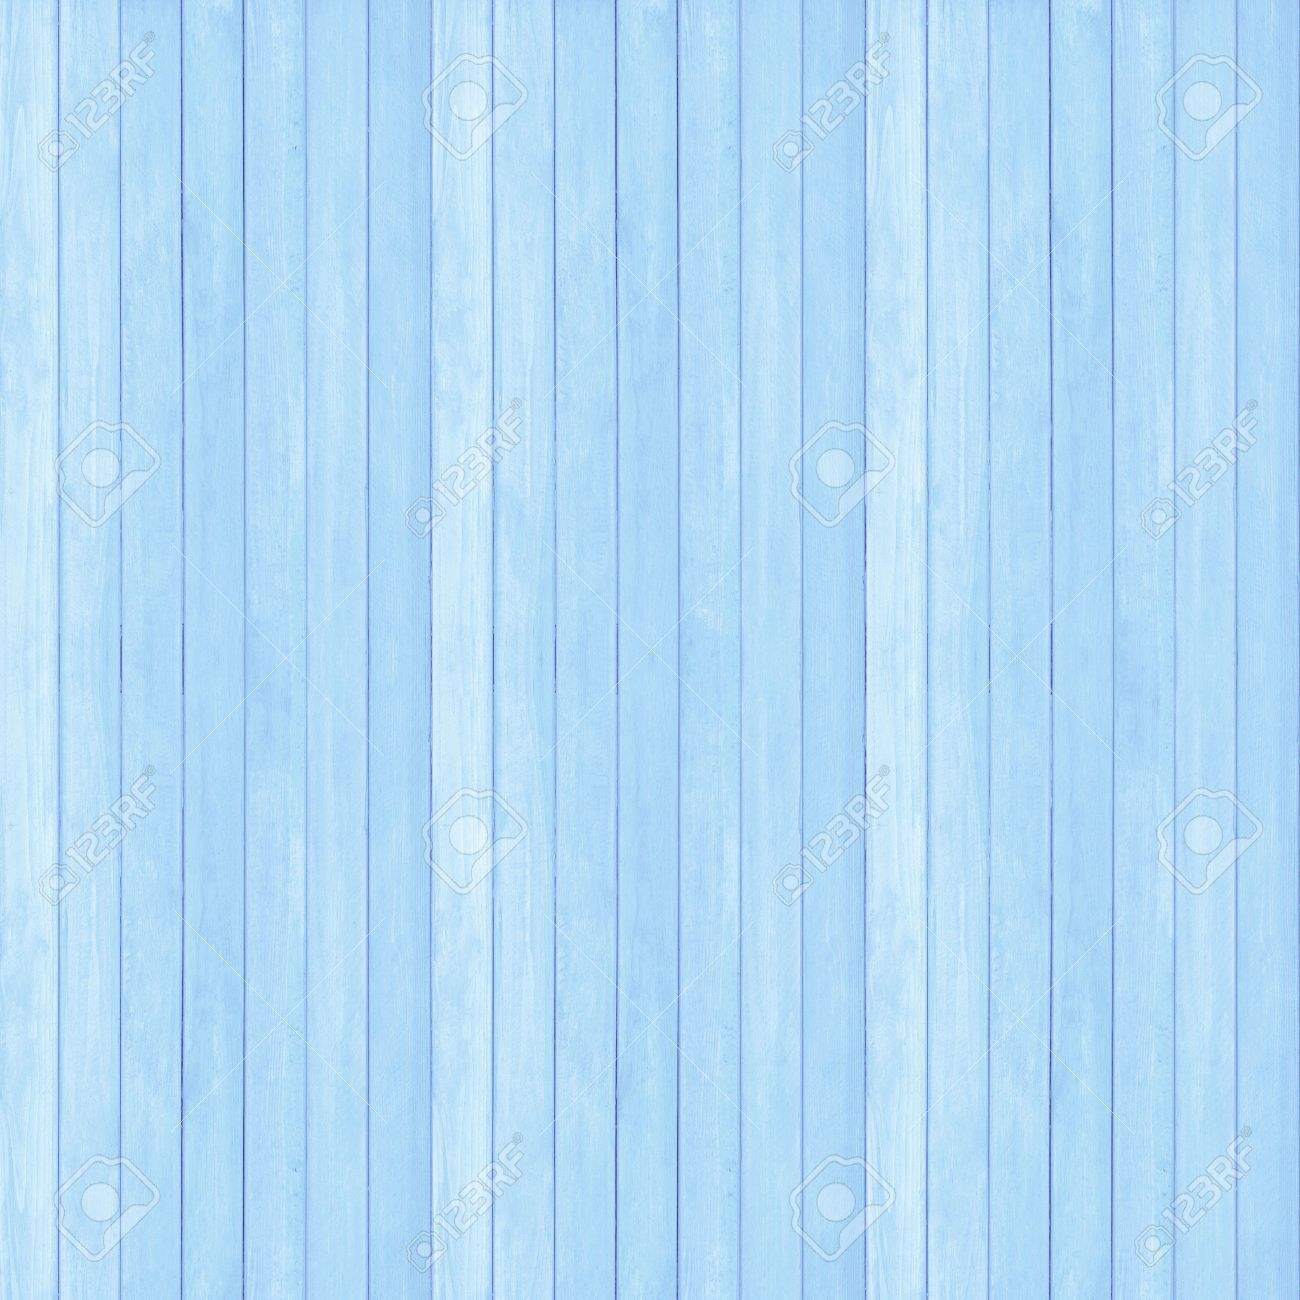 Wooden wall texture background, Blue pastel color - 41965906